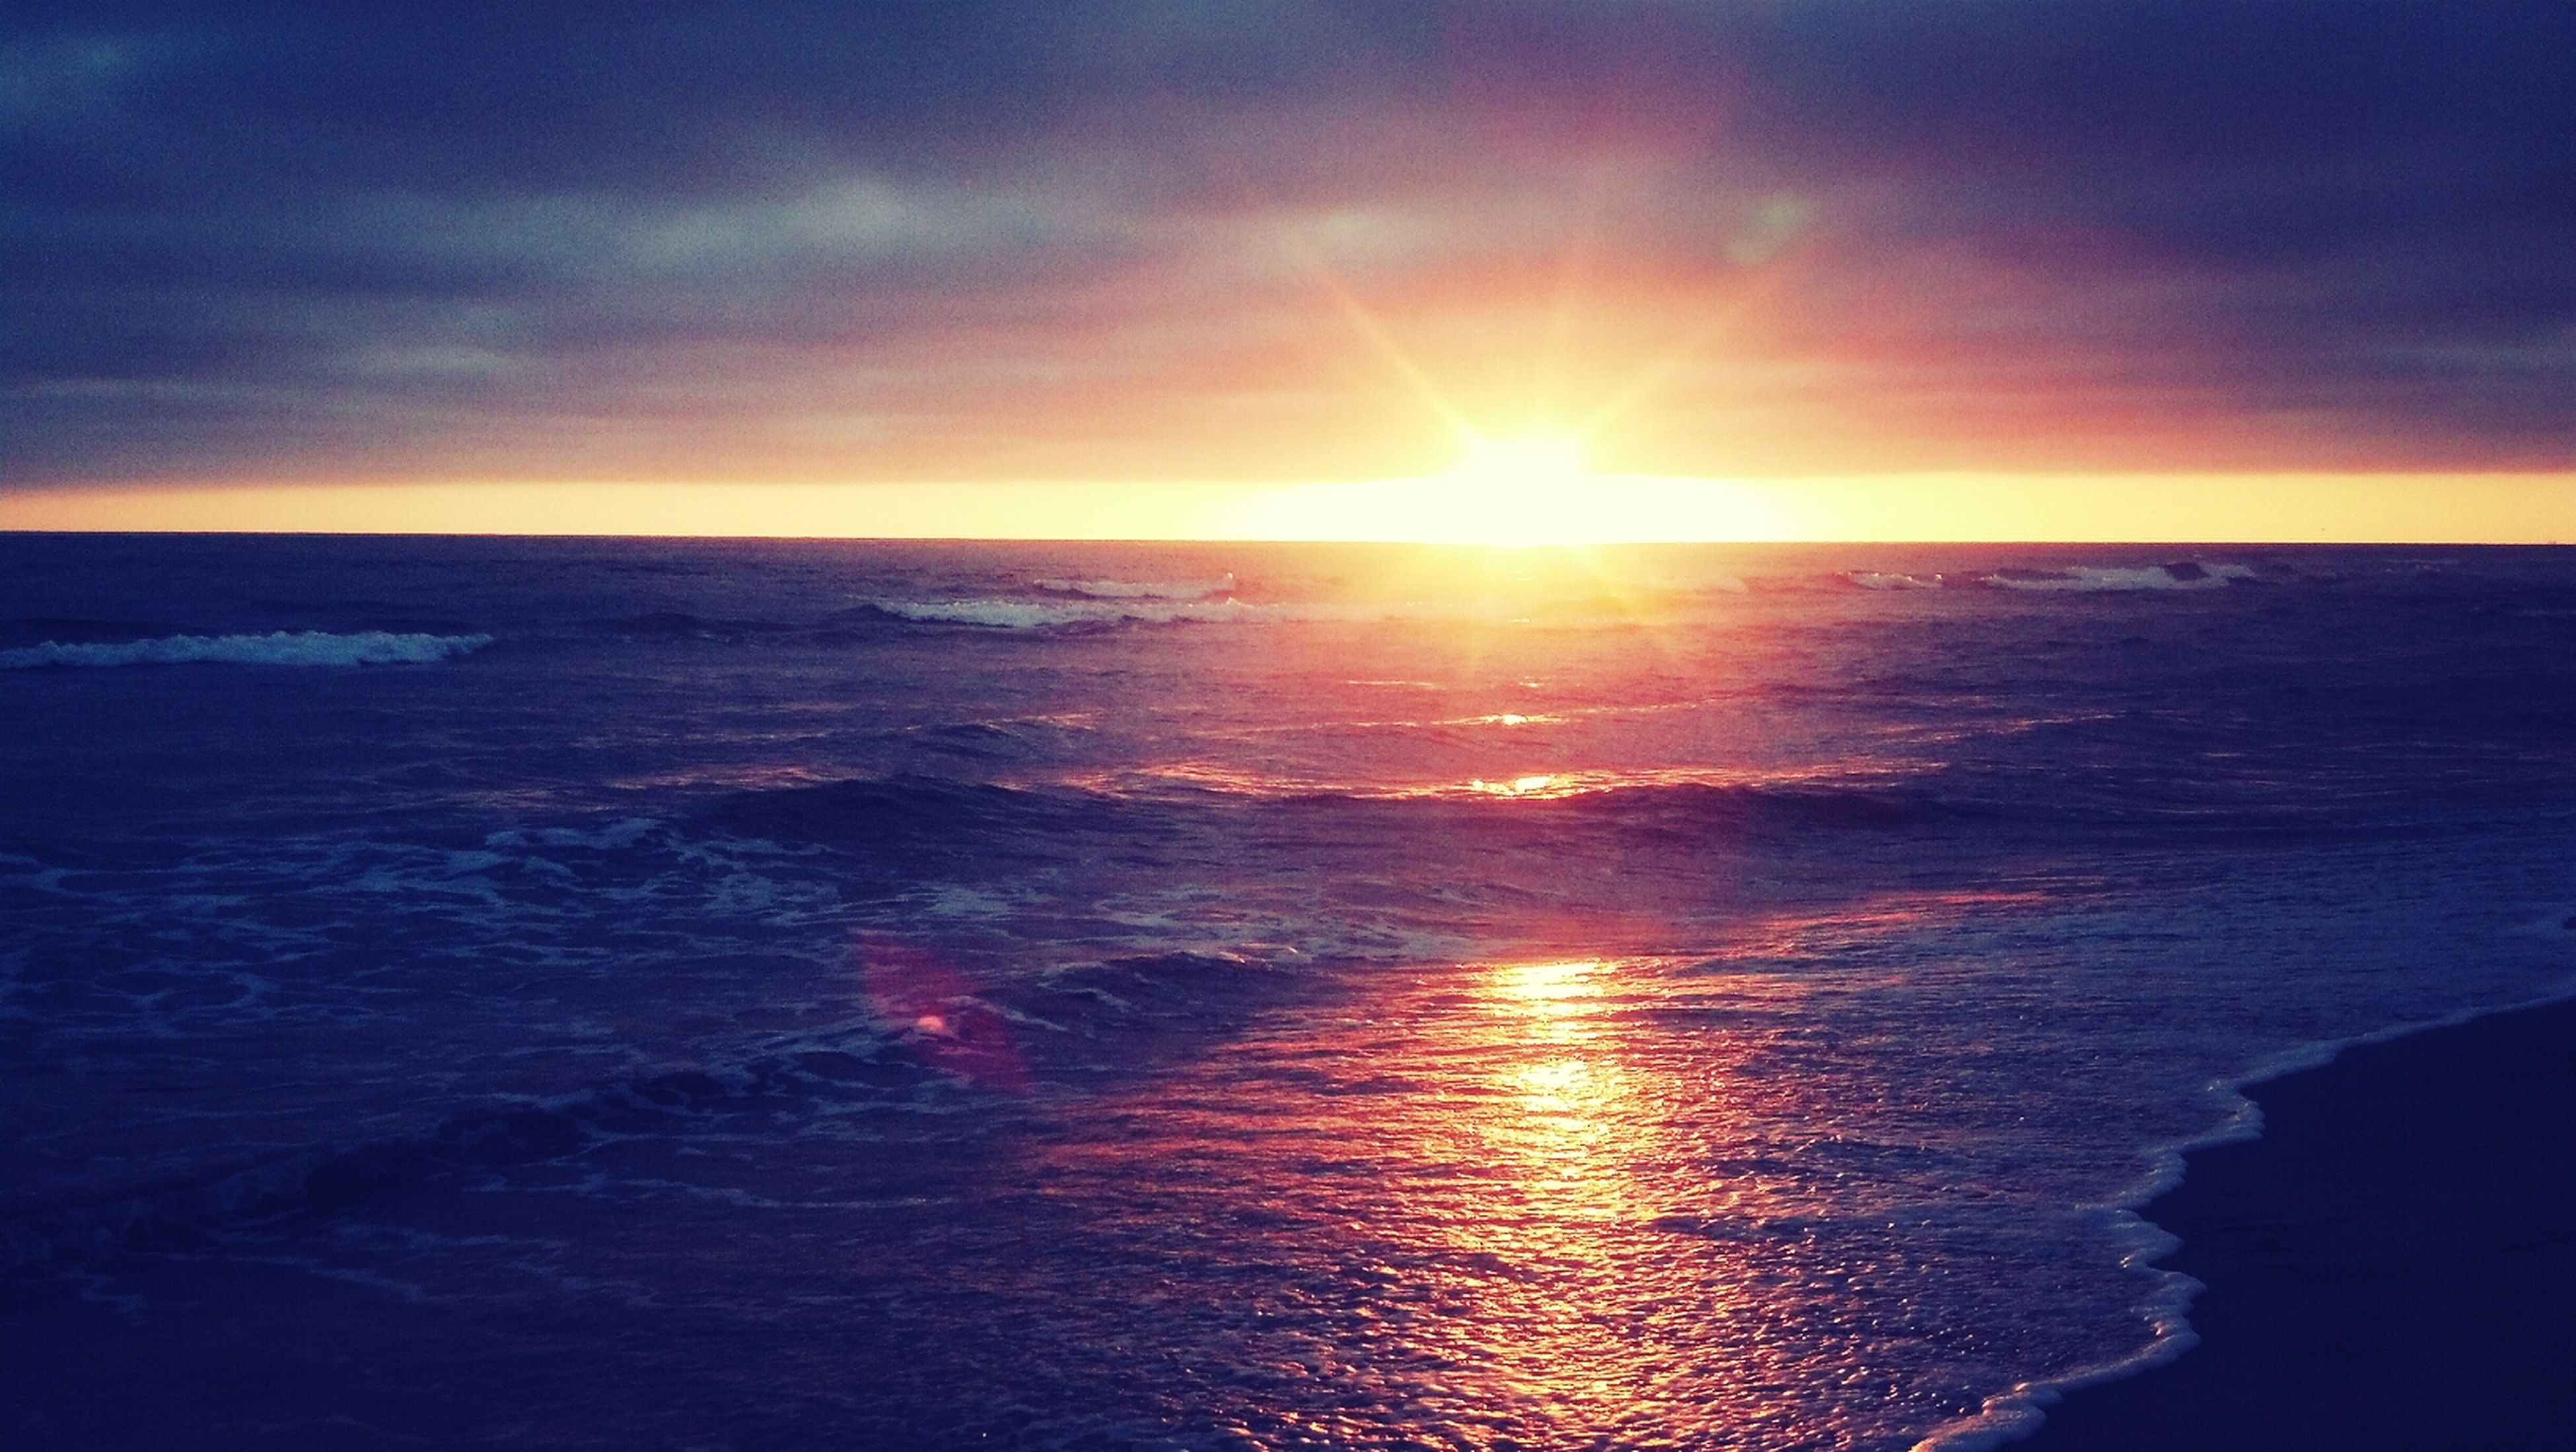 water, sea, sunset, horizon over water, sun, scenics, tranquil scene, beauty in nature, reflection, tranquility, sky, waterfront, idyllic, nature, sunlight, orange color, seascape, rippled, cloud - sky, beach